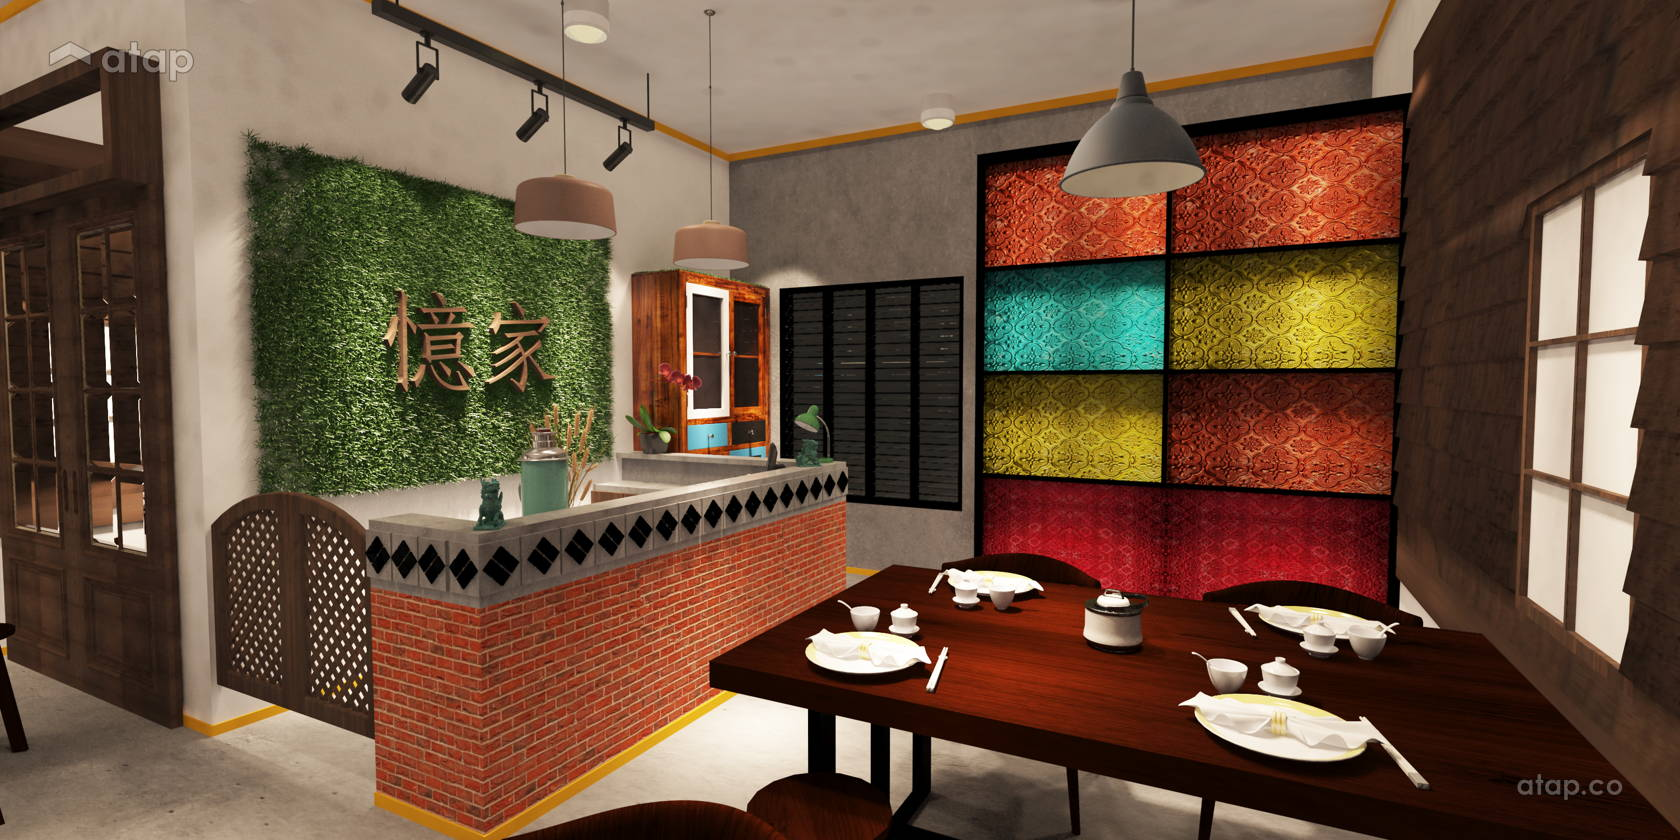 Rustic Vintage F B Retail Shophouse Design Ideas Photos Malaysia Atap Co